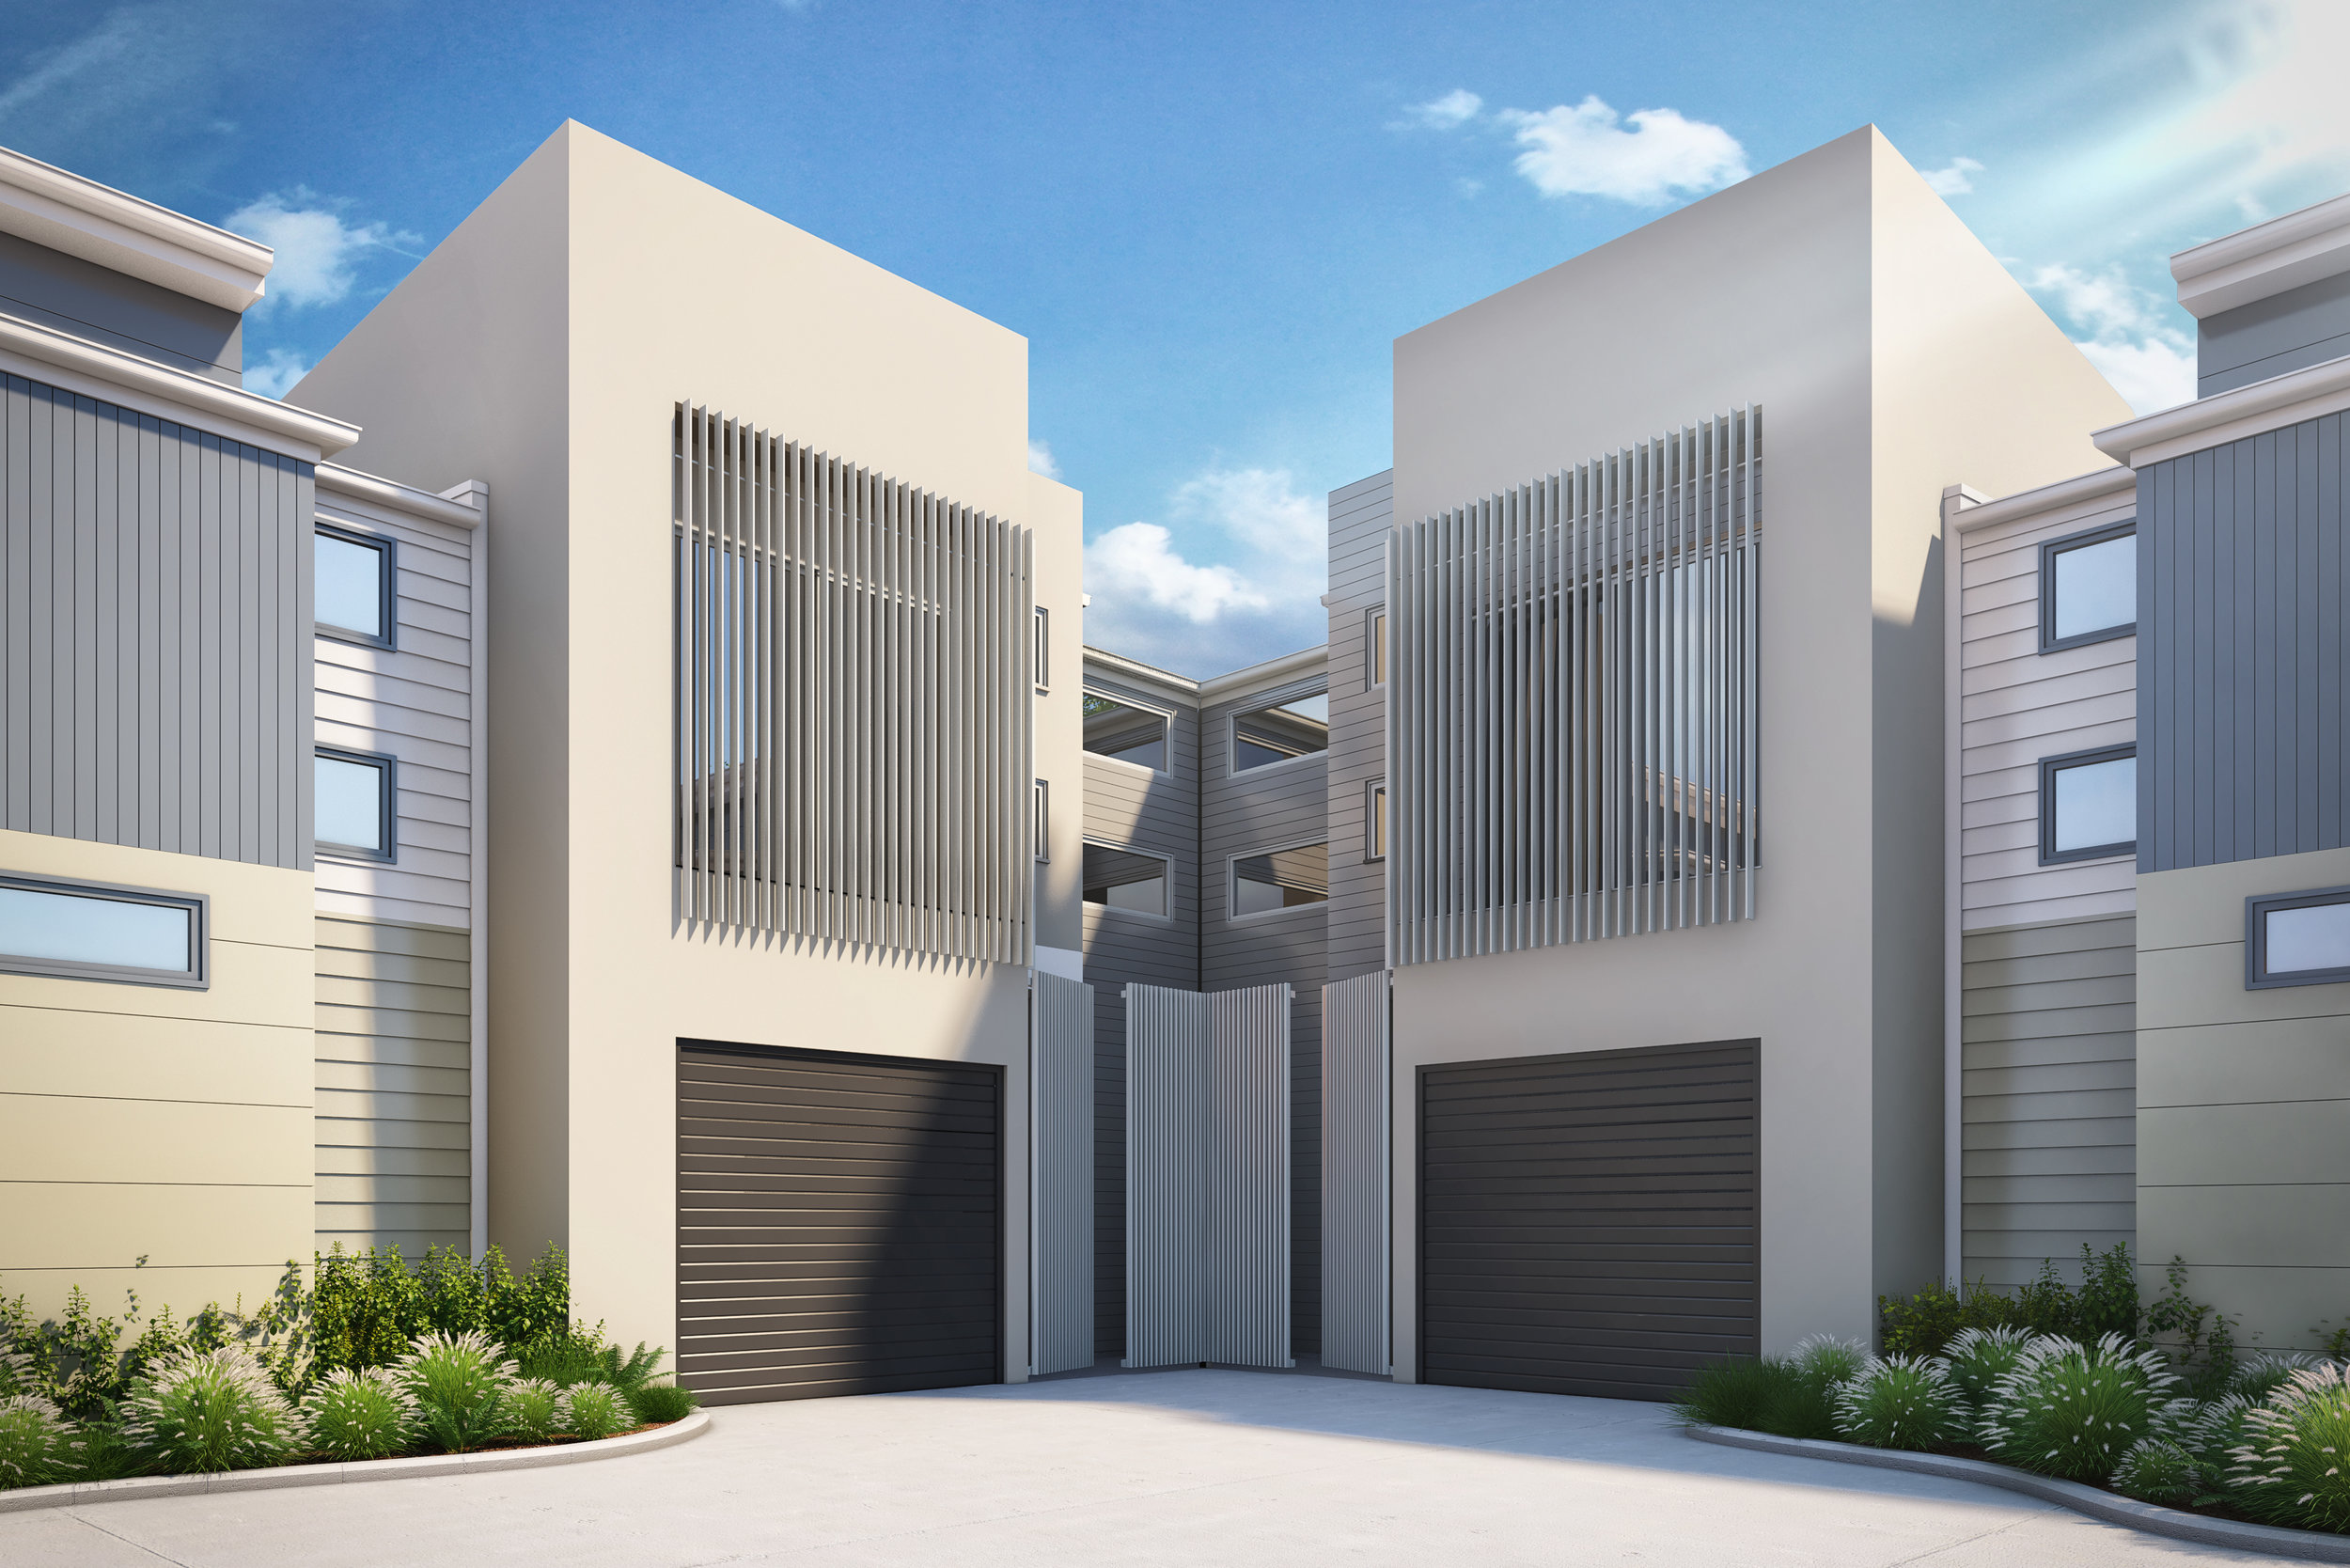 The Nest - Only 1 lot remaining!Lot 5 - Roghan Rd FitzgibbonFixed Price House & Land $399,500.Freehold terrace home, no body corp fees or regulations. Bring your pets!